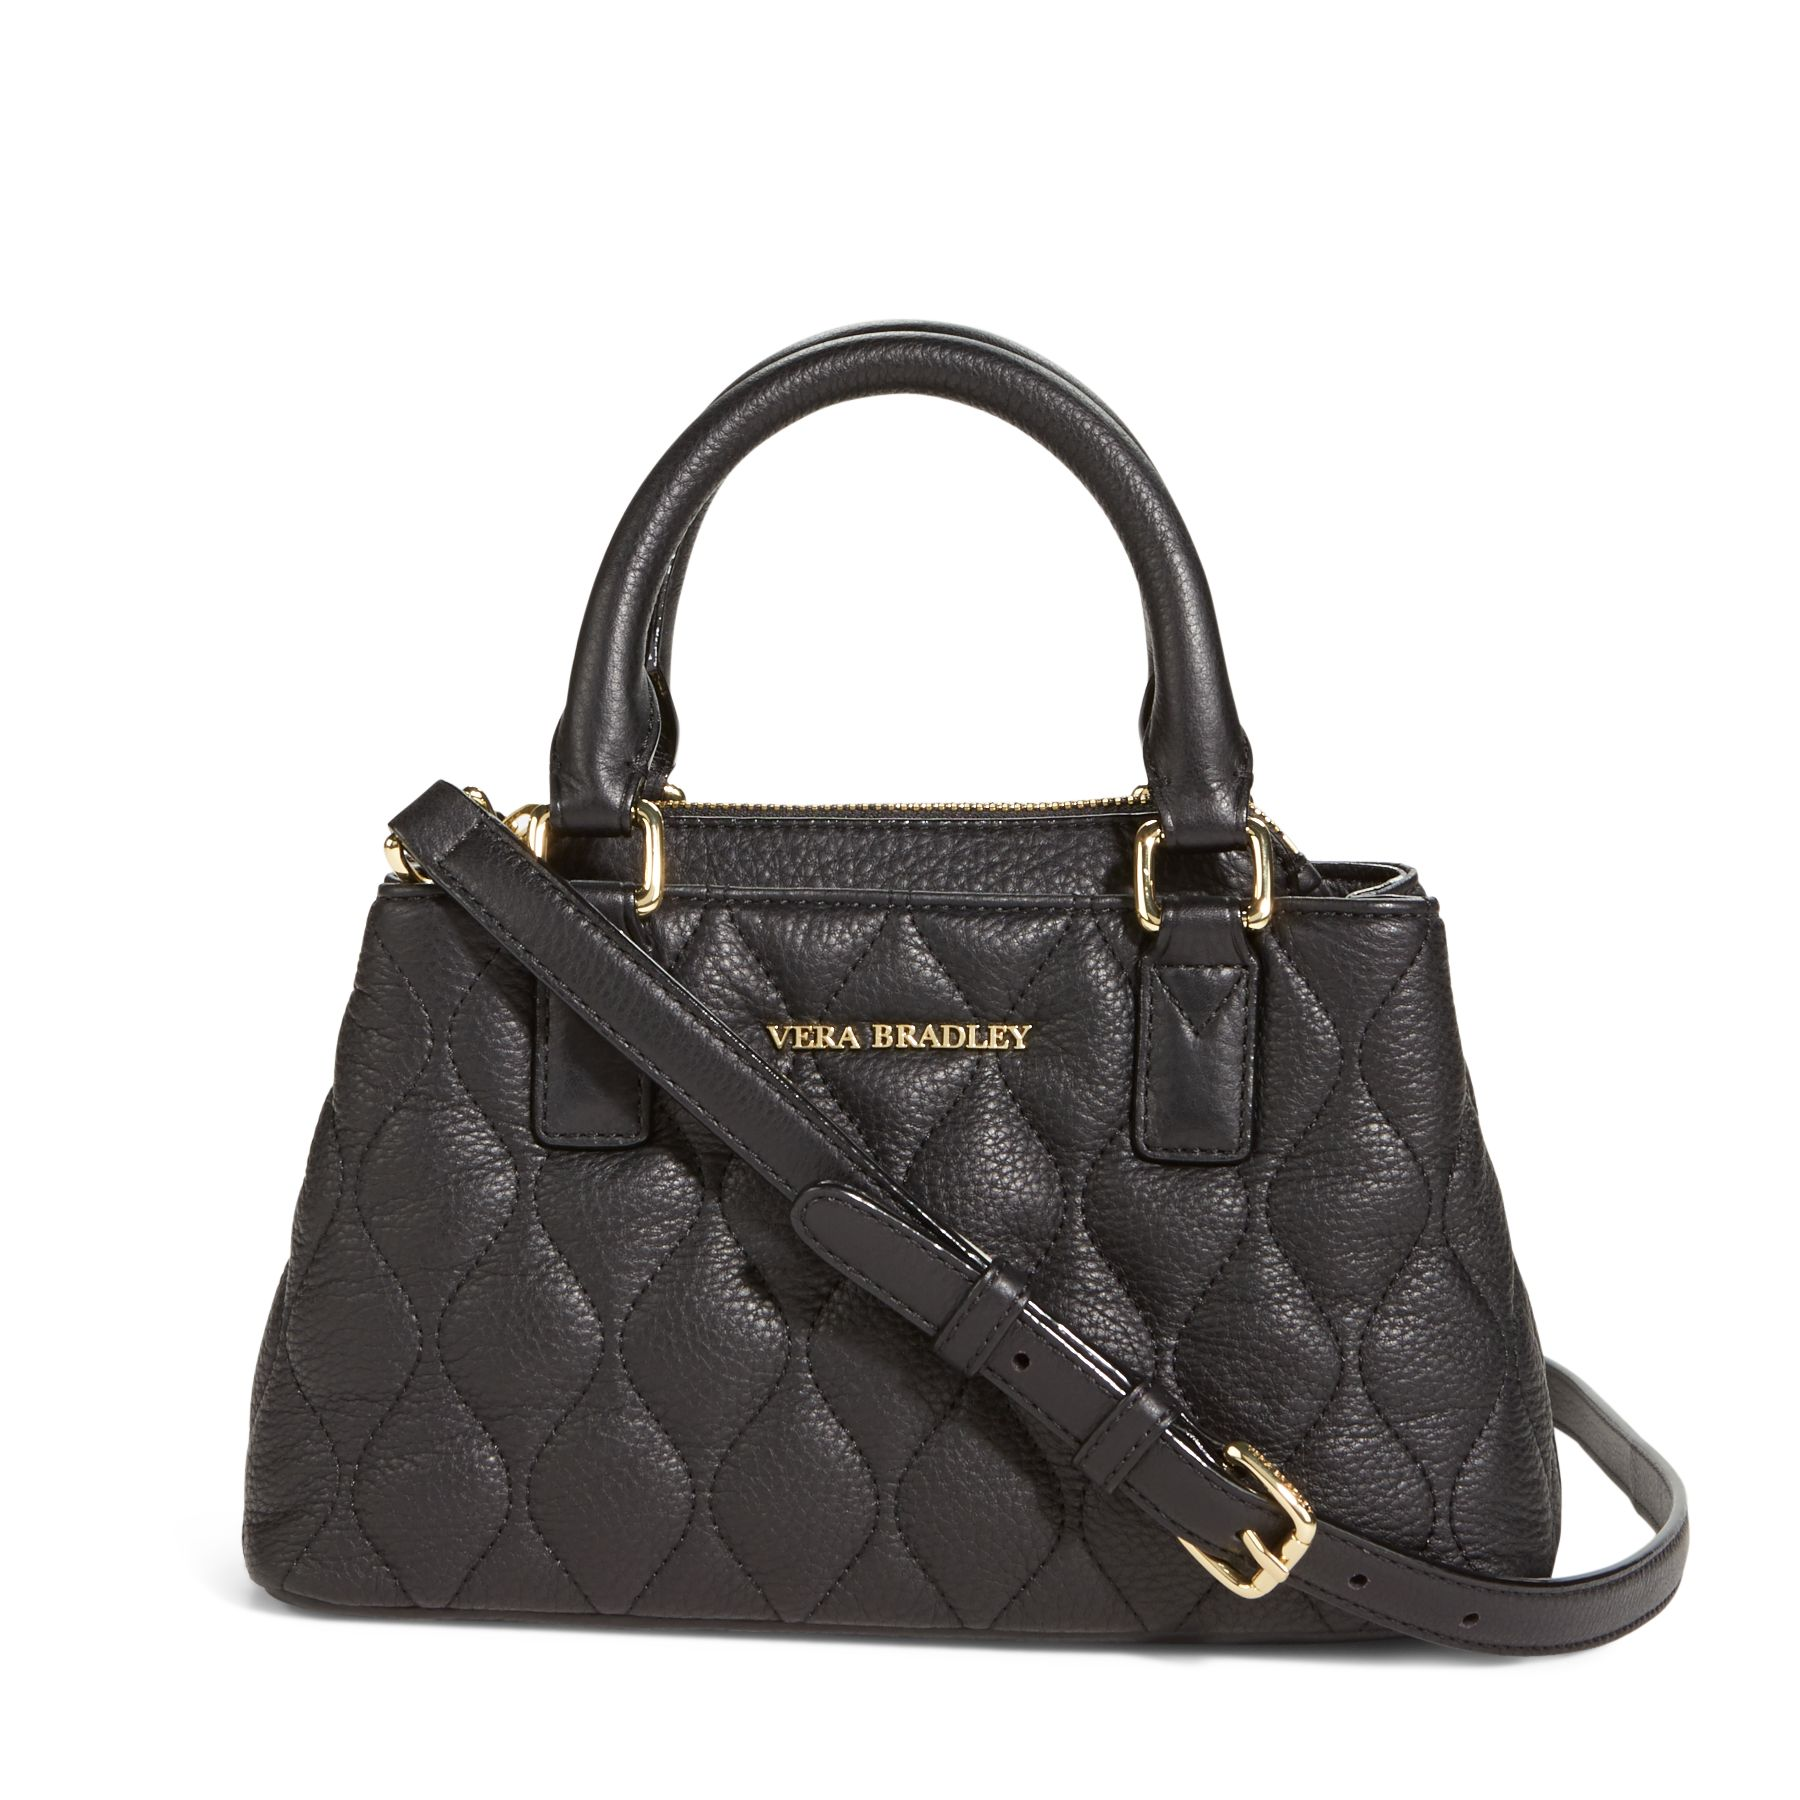 com shoulder chain black leather s women quilted one bag sloan dp womens amazon kors quilt size michael handbags